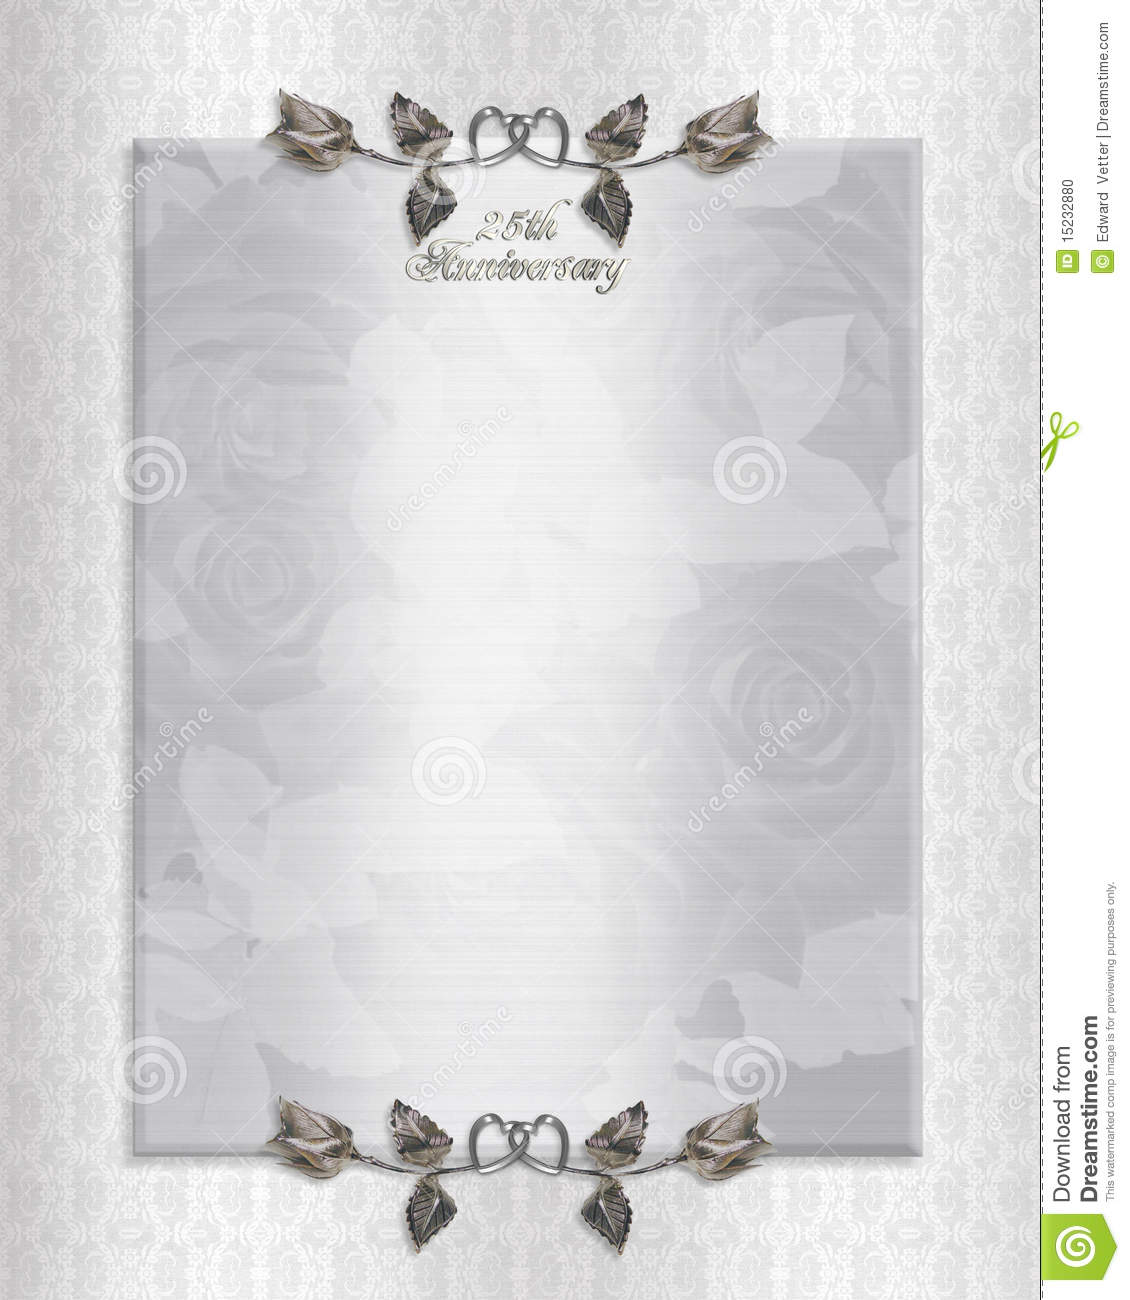 Anniversary Invitation Template Hunecompanycom - Wedding invitation templates: silver wedding invitations templates